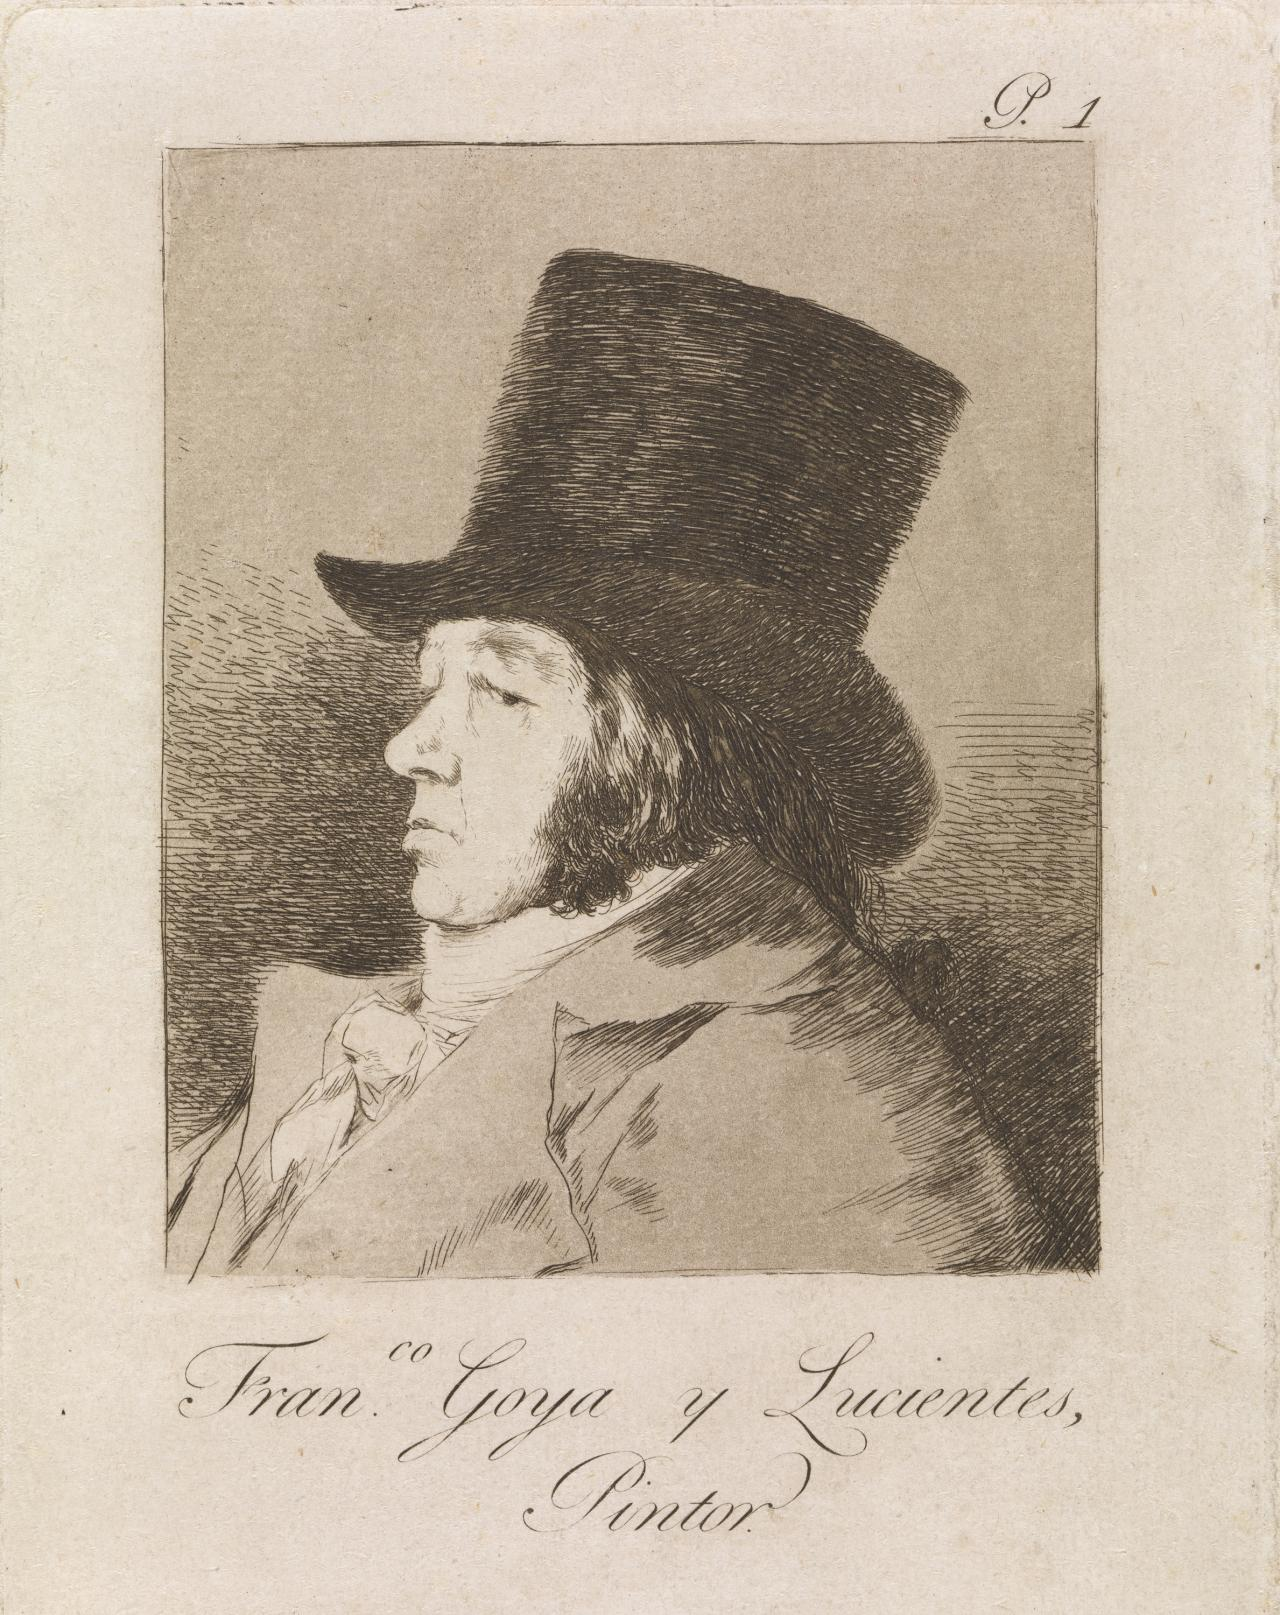 Francisco Goya y Lucientes, Painter